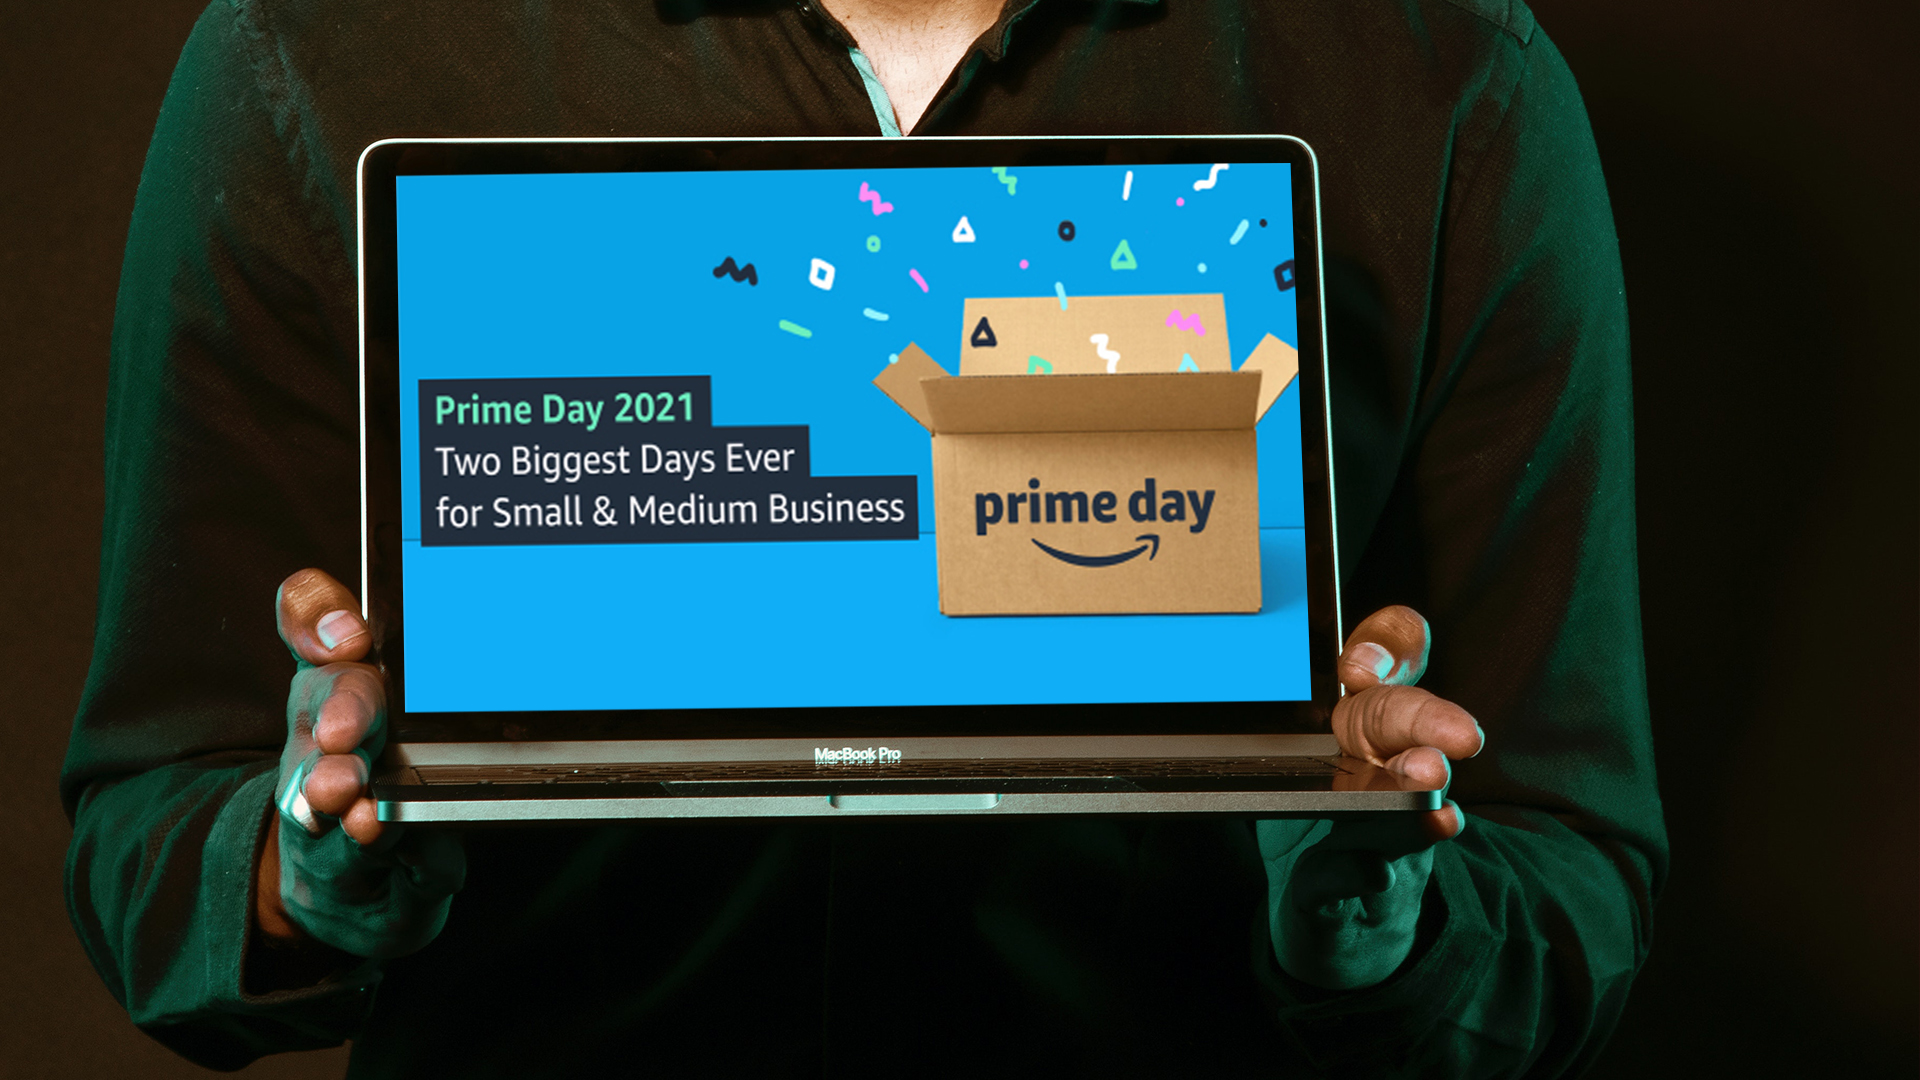 Amazon Prime Day 2021 a big win for small businesses and customers